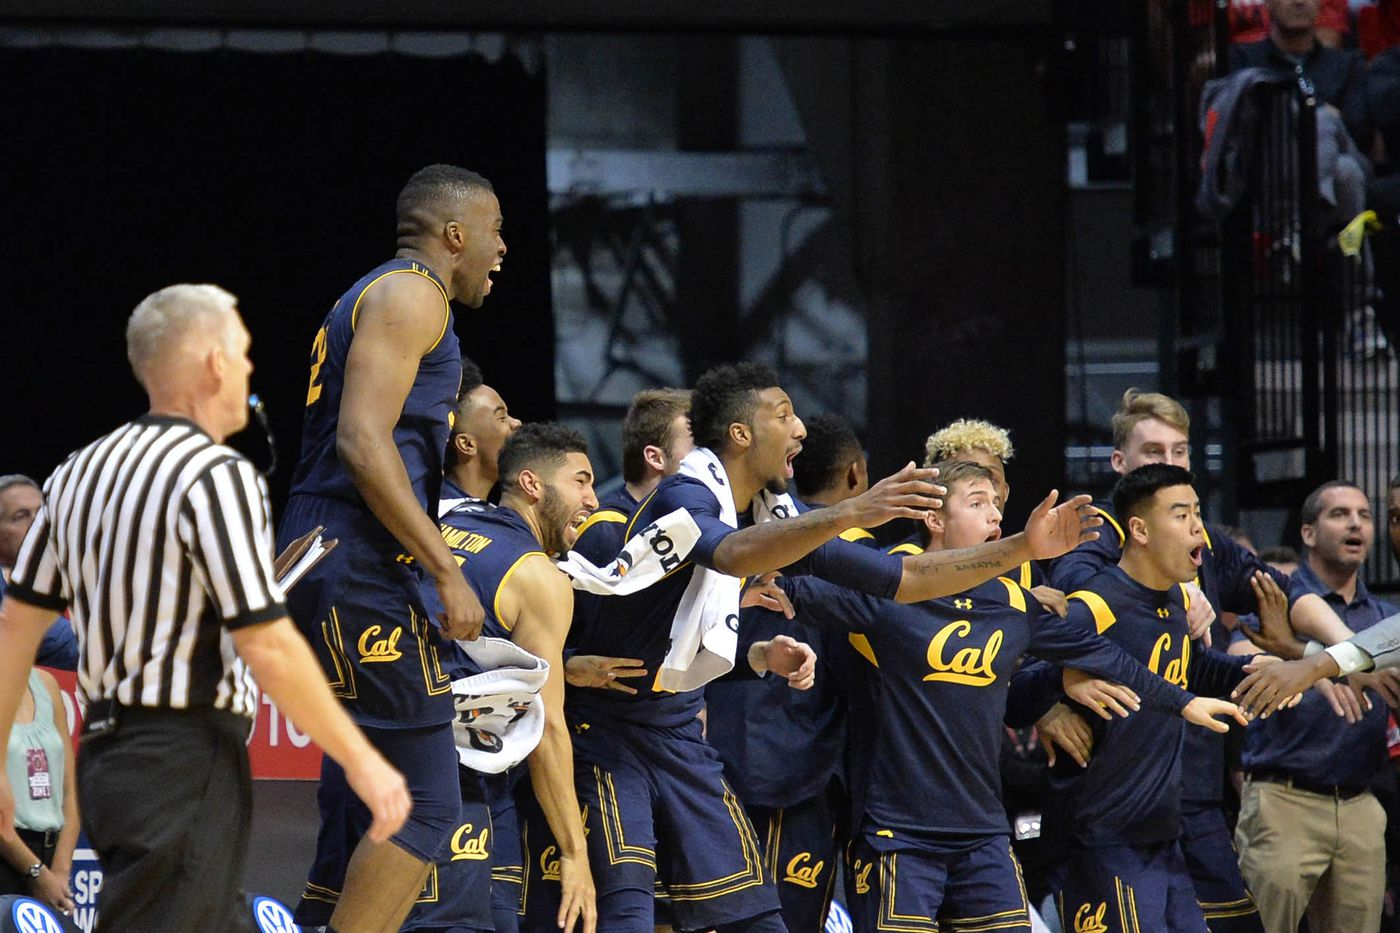 Uc Berkeley Calendar 2020-21 Pac 12 Men's Basketball conference schedule will expand to 20